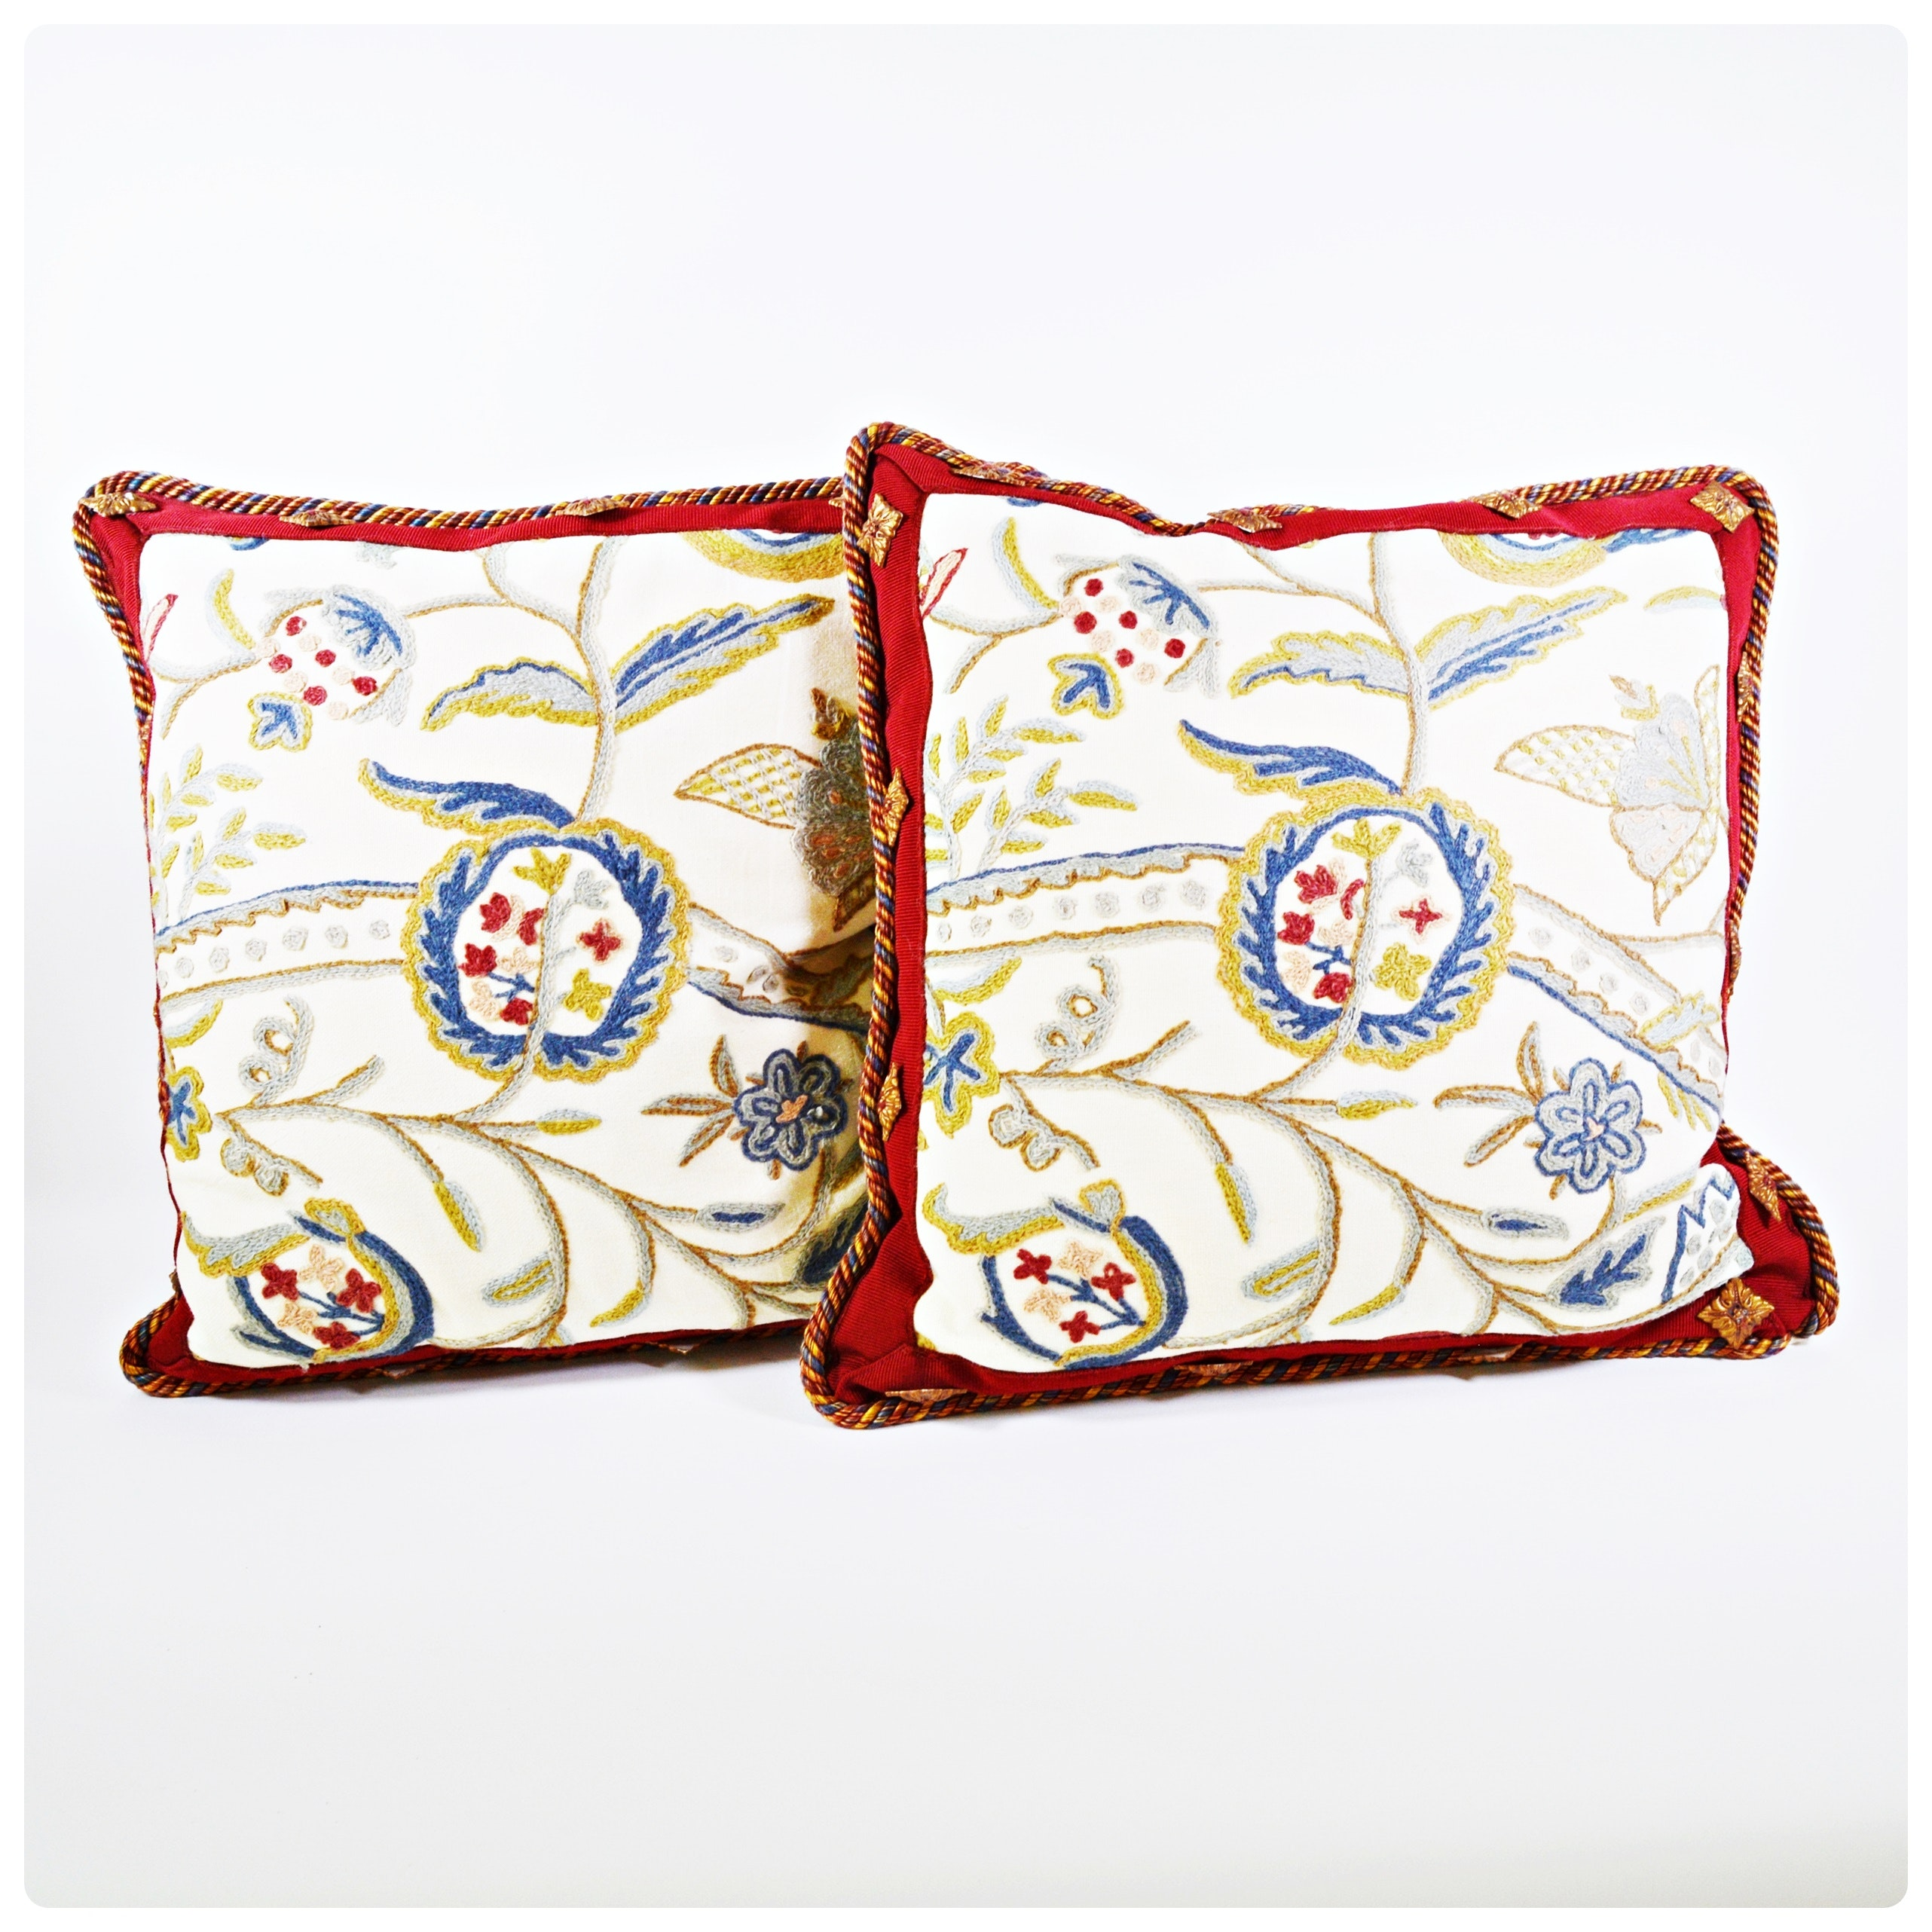 Crewel Embroidered Pillows